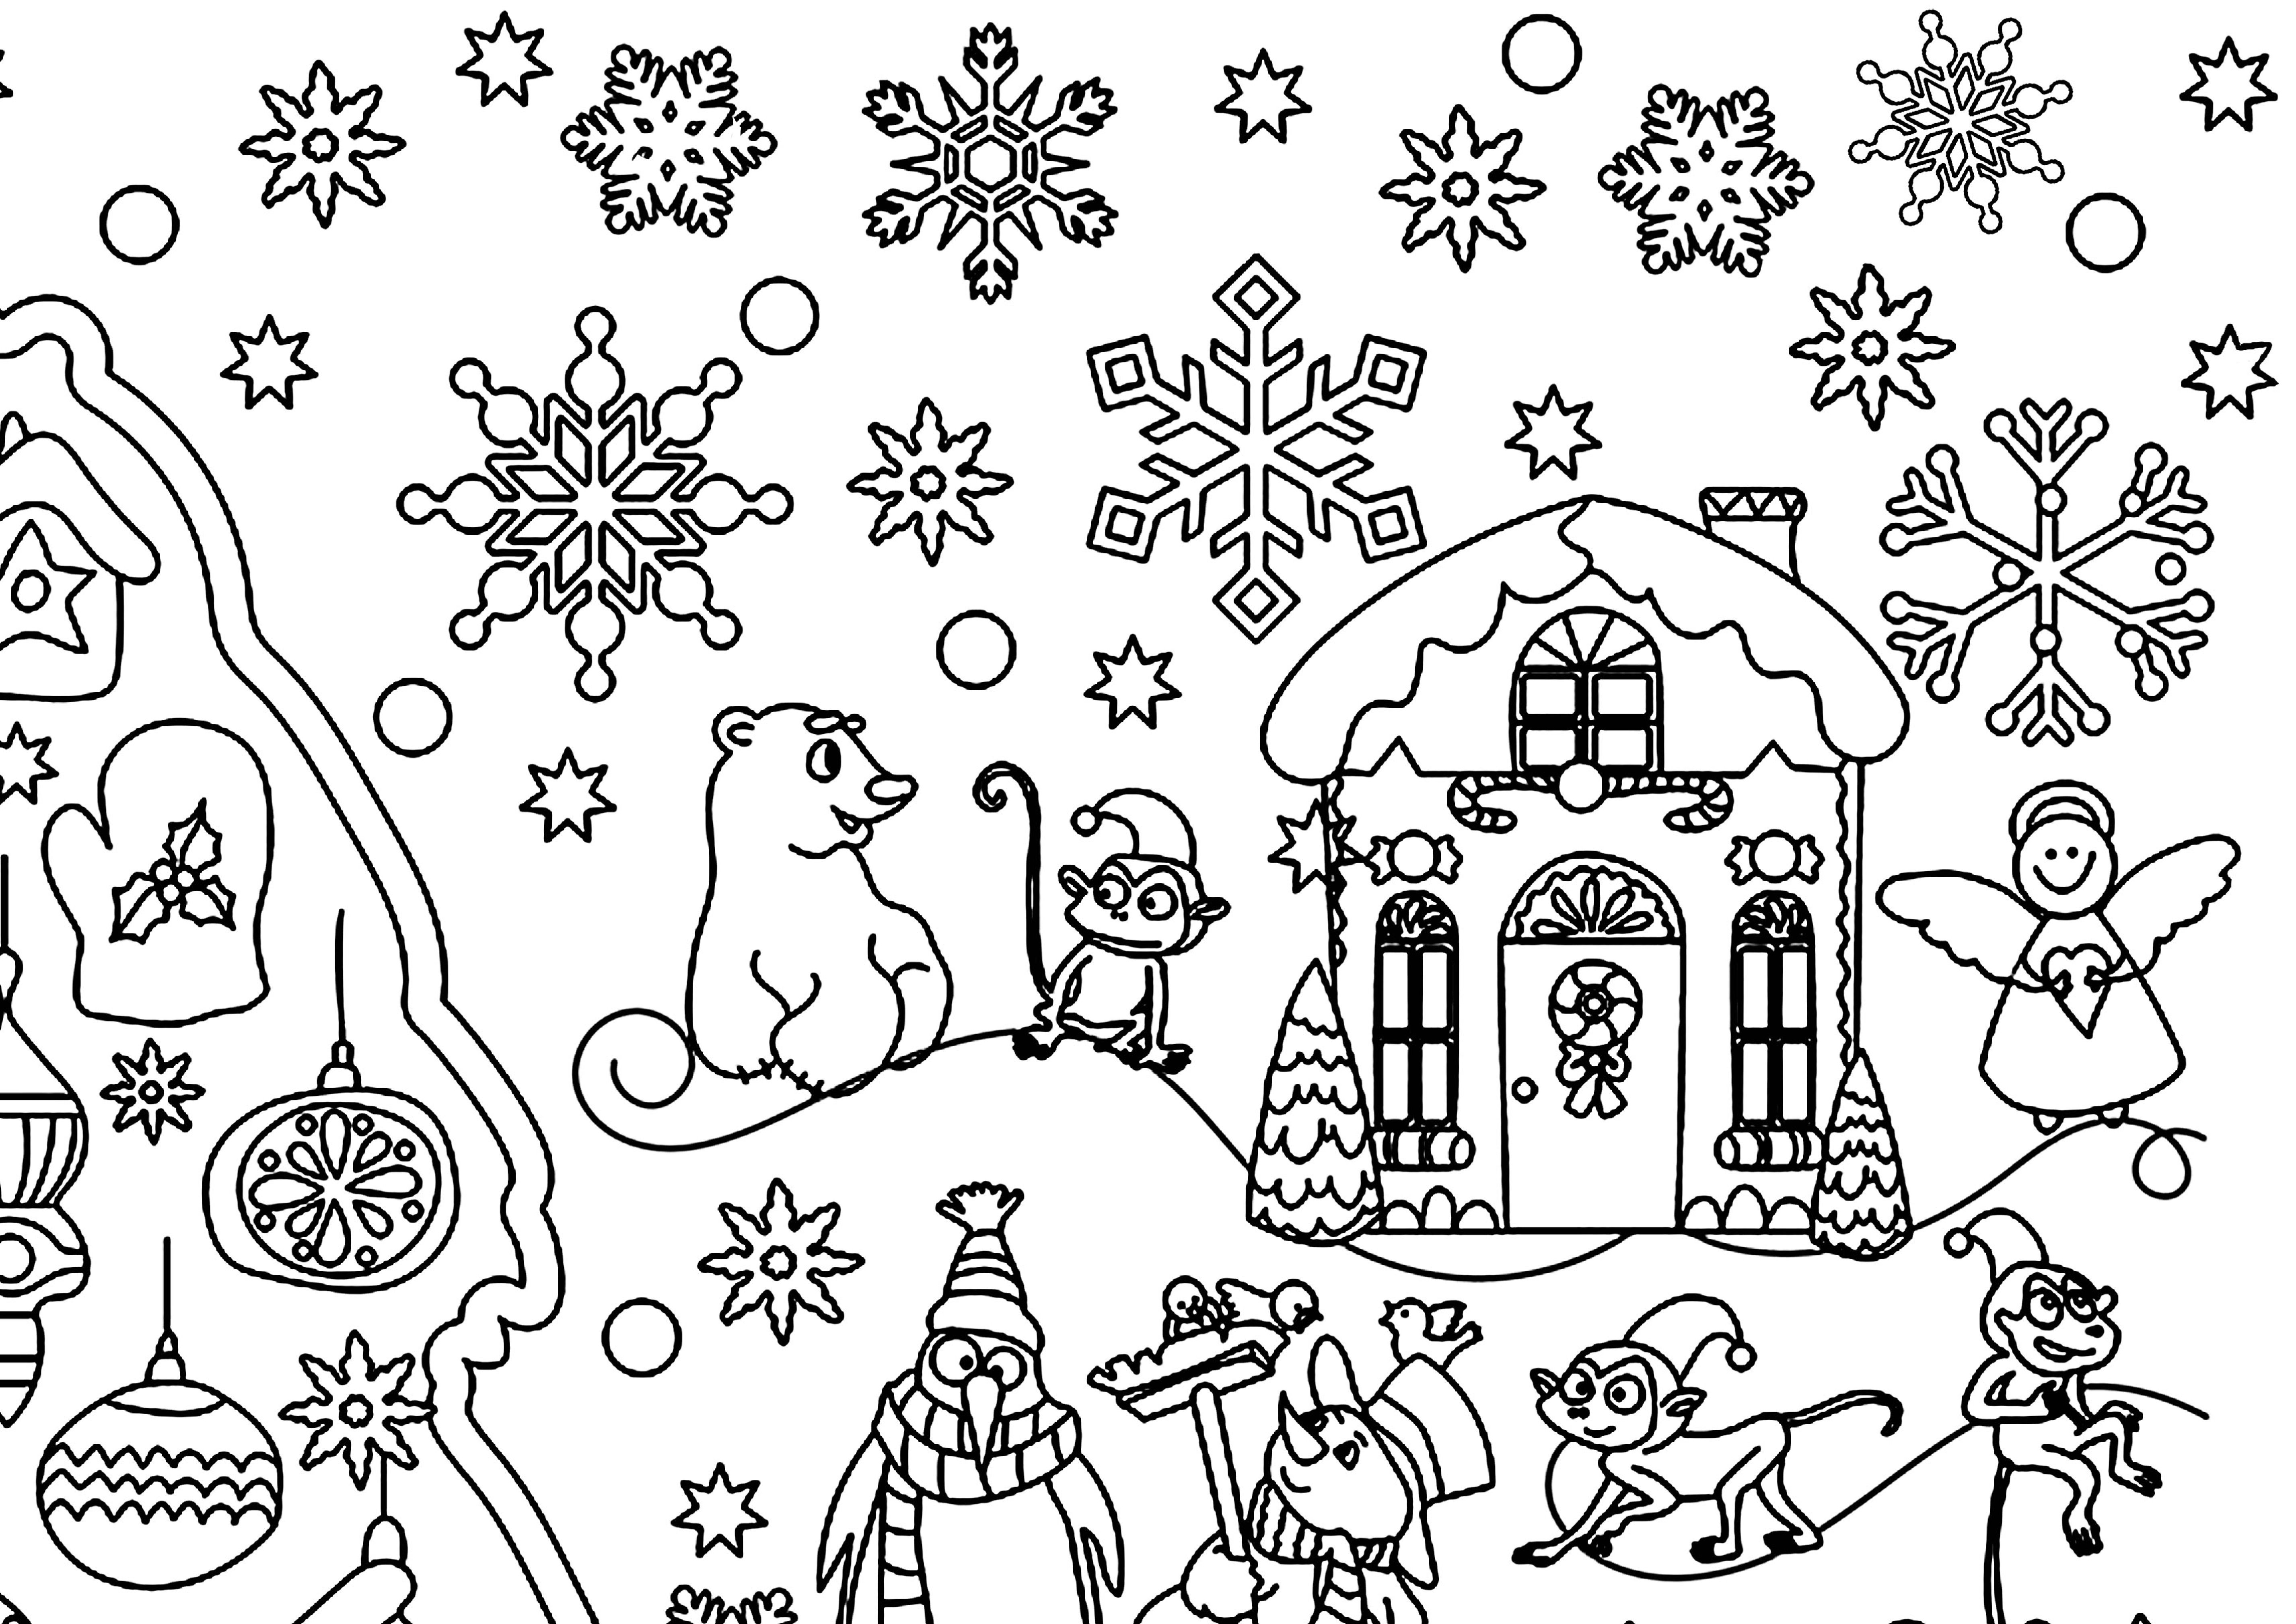 15 Coloring Pages For Kids Printables Free In 2020 Printables Free Kids Flap Book Printables Kids